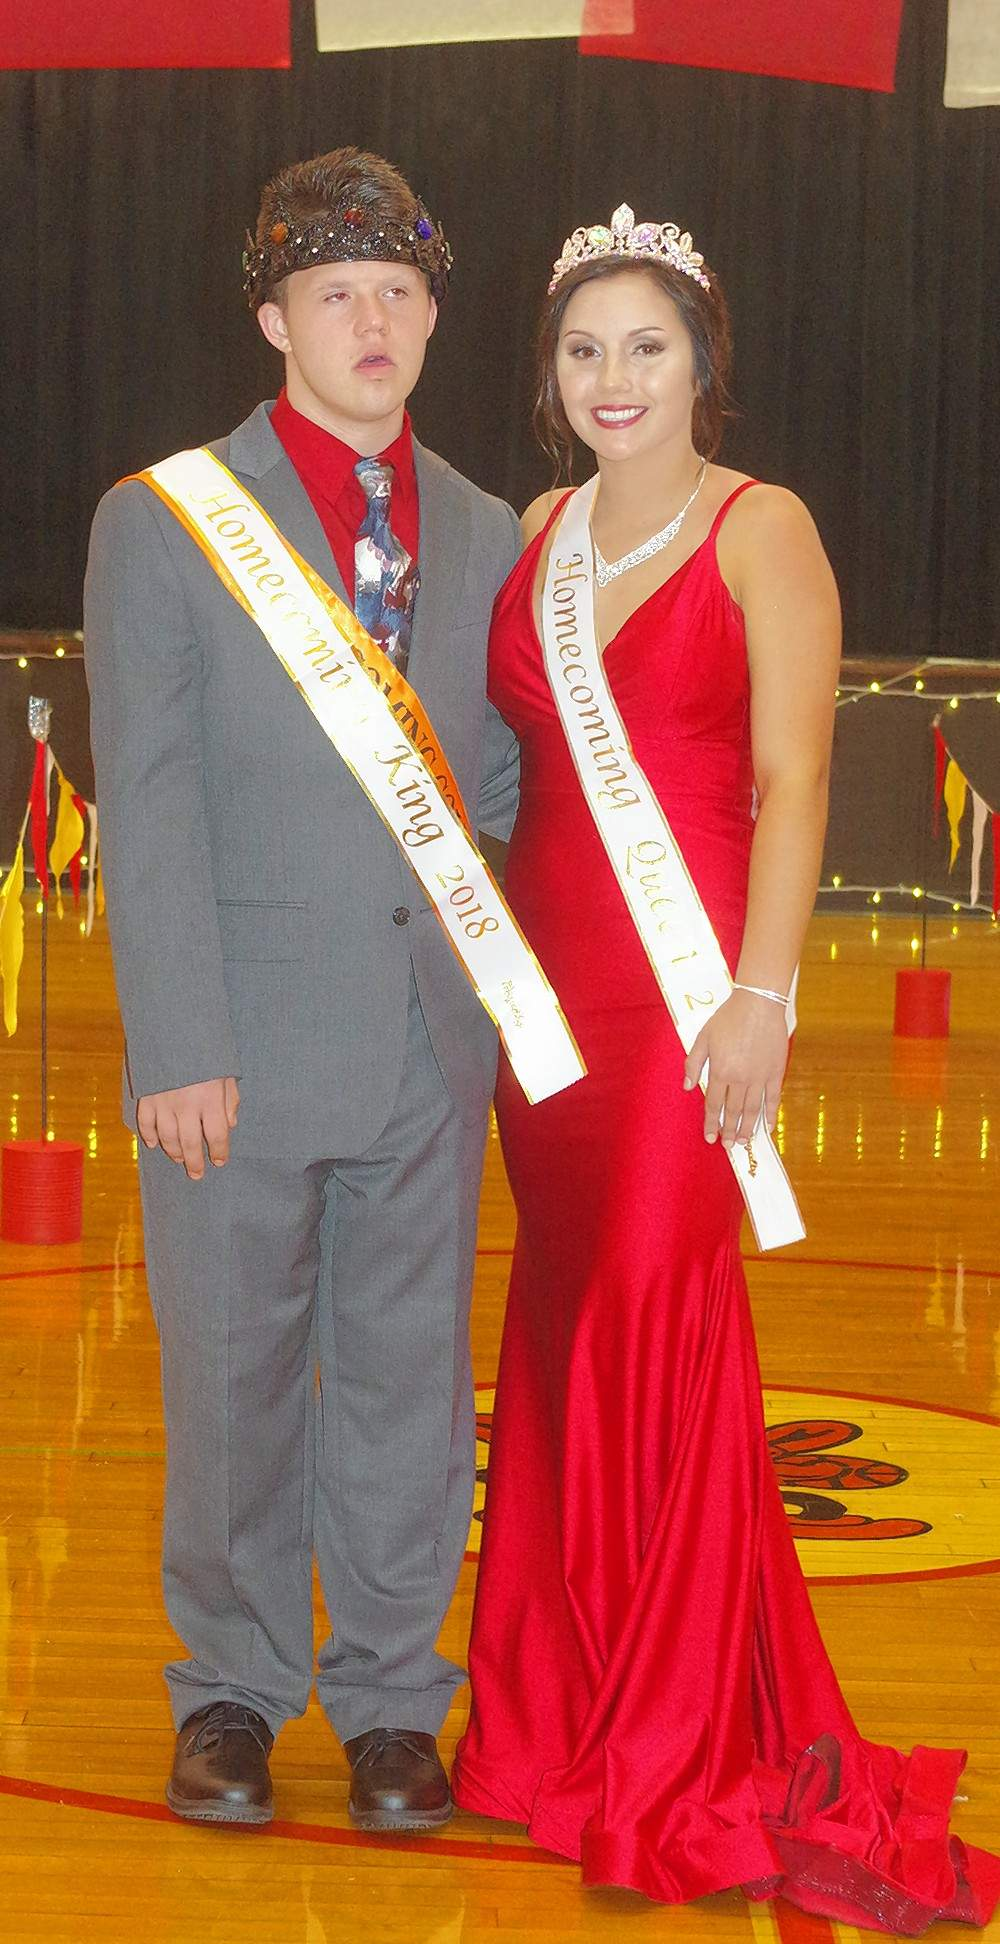 2018 Chester High School Homecoming King and Queen Austin Schweitzer and Shea Petrowske pose for a photo immediately following the coronation ceremony Sept. 29 at the 2018 Homecoming Dance.